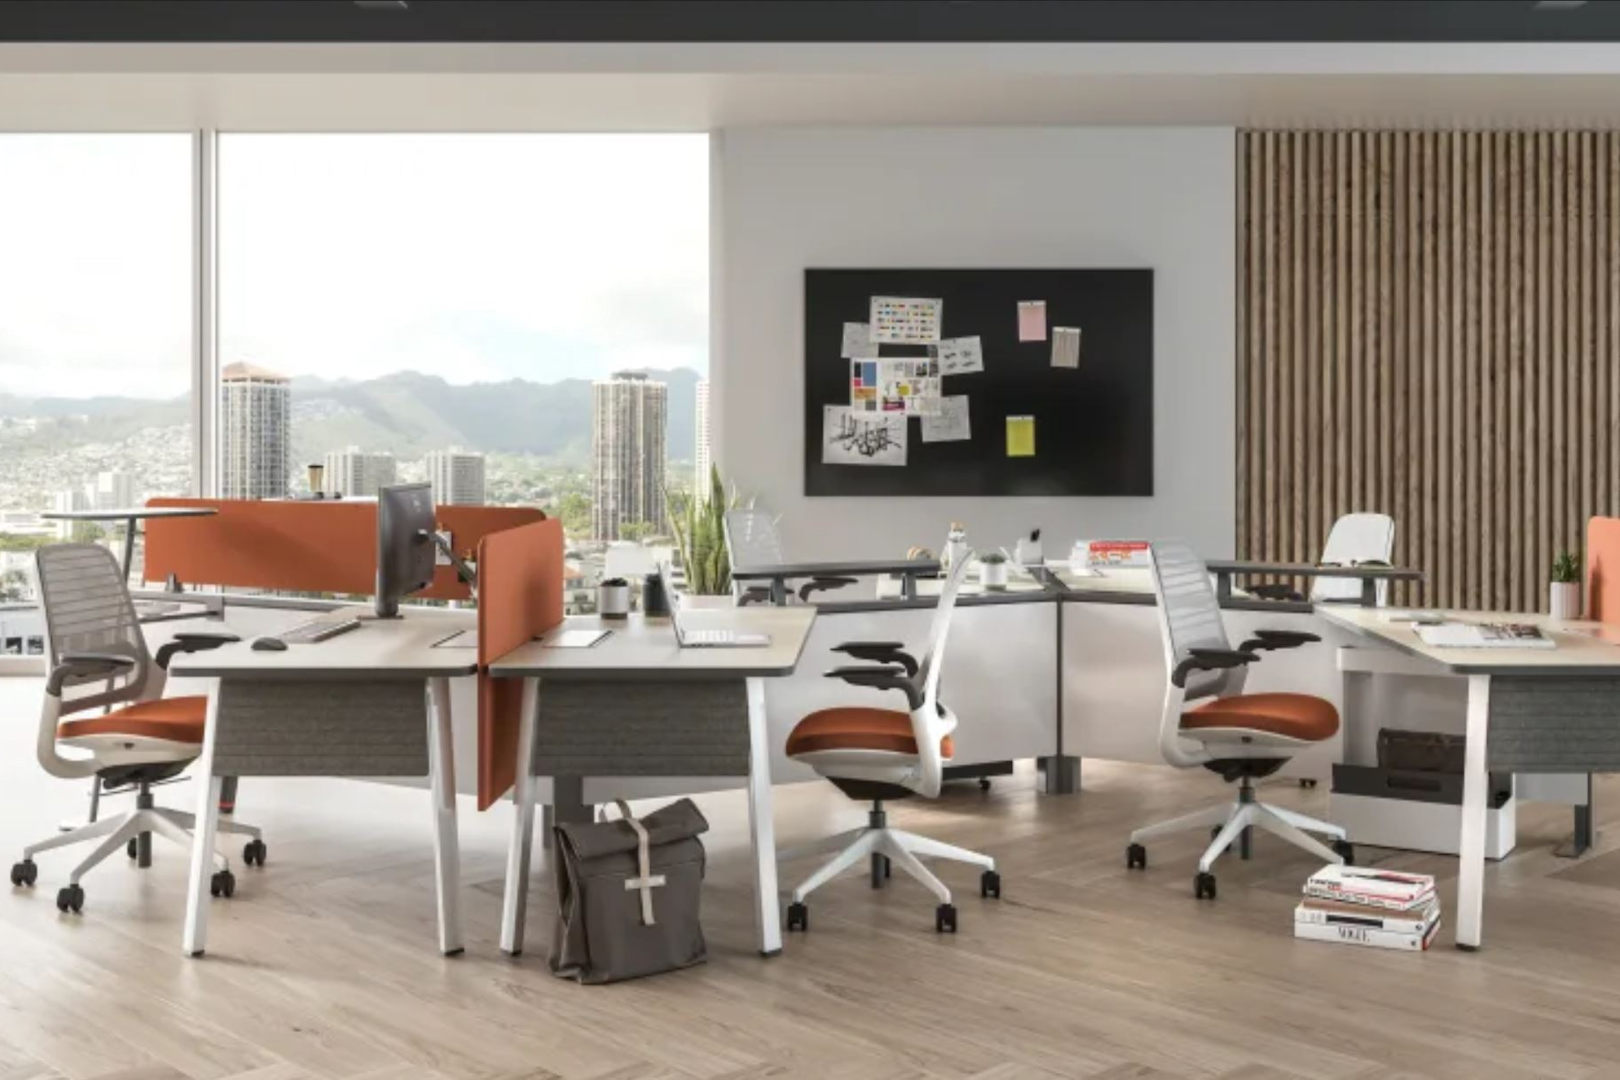 microngroup-office-network-cabling-data-installations-in-workstations